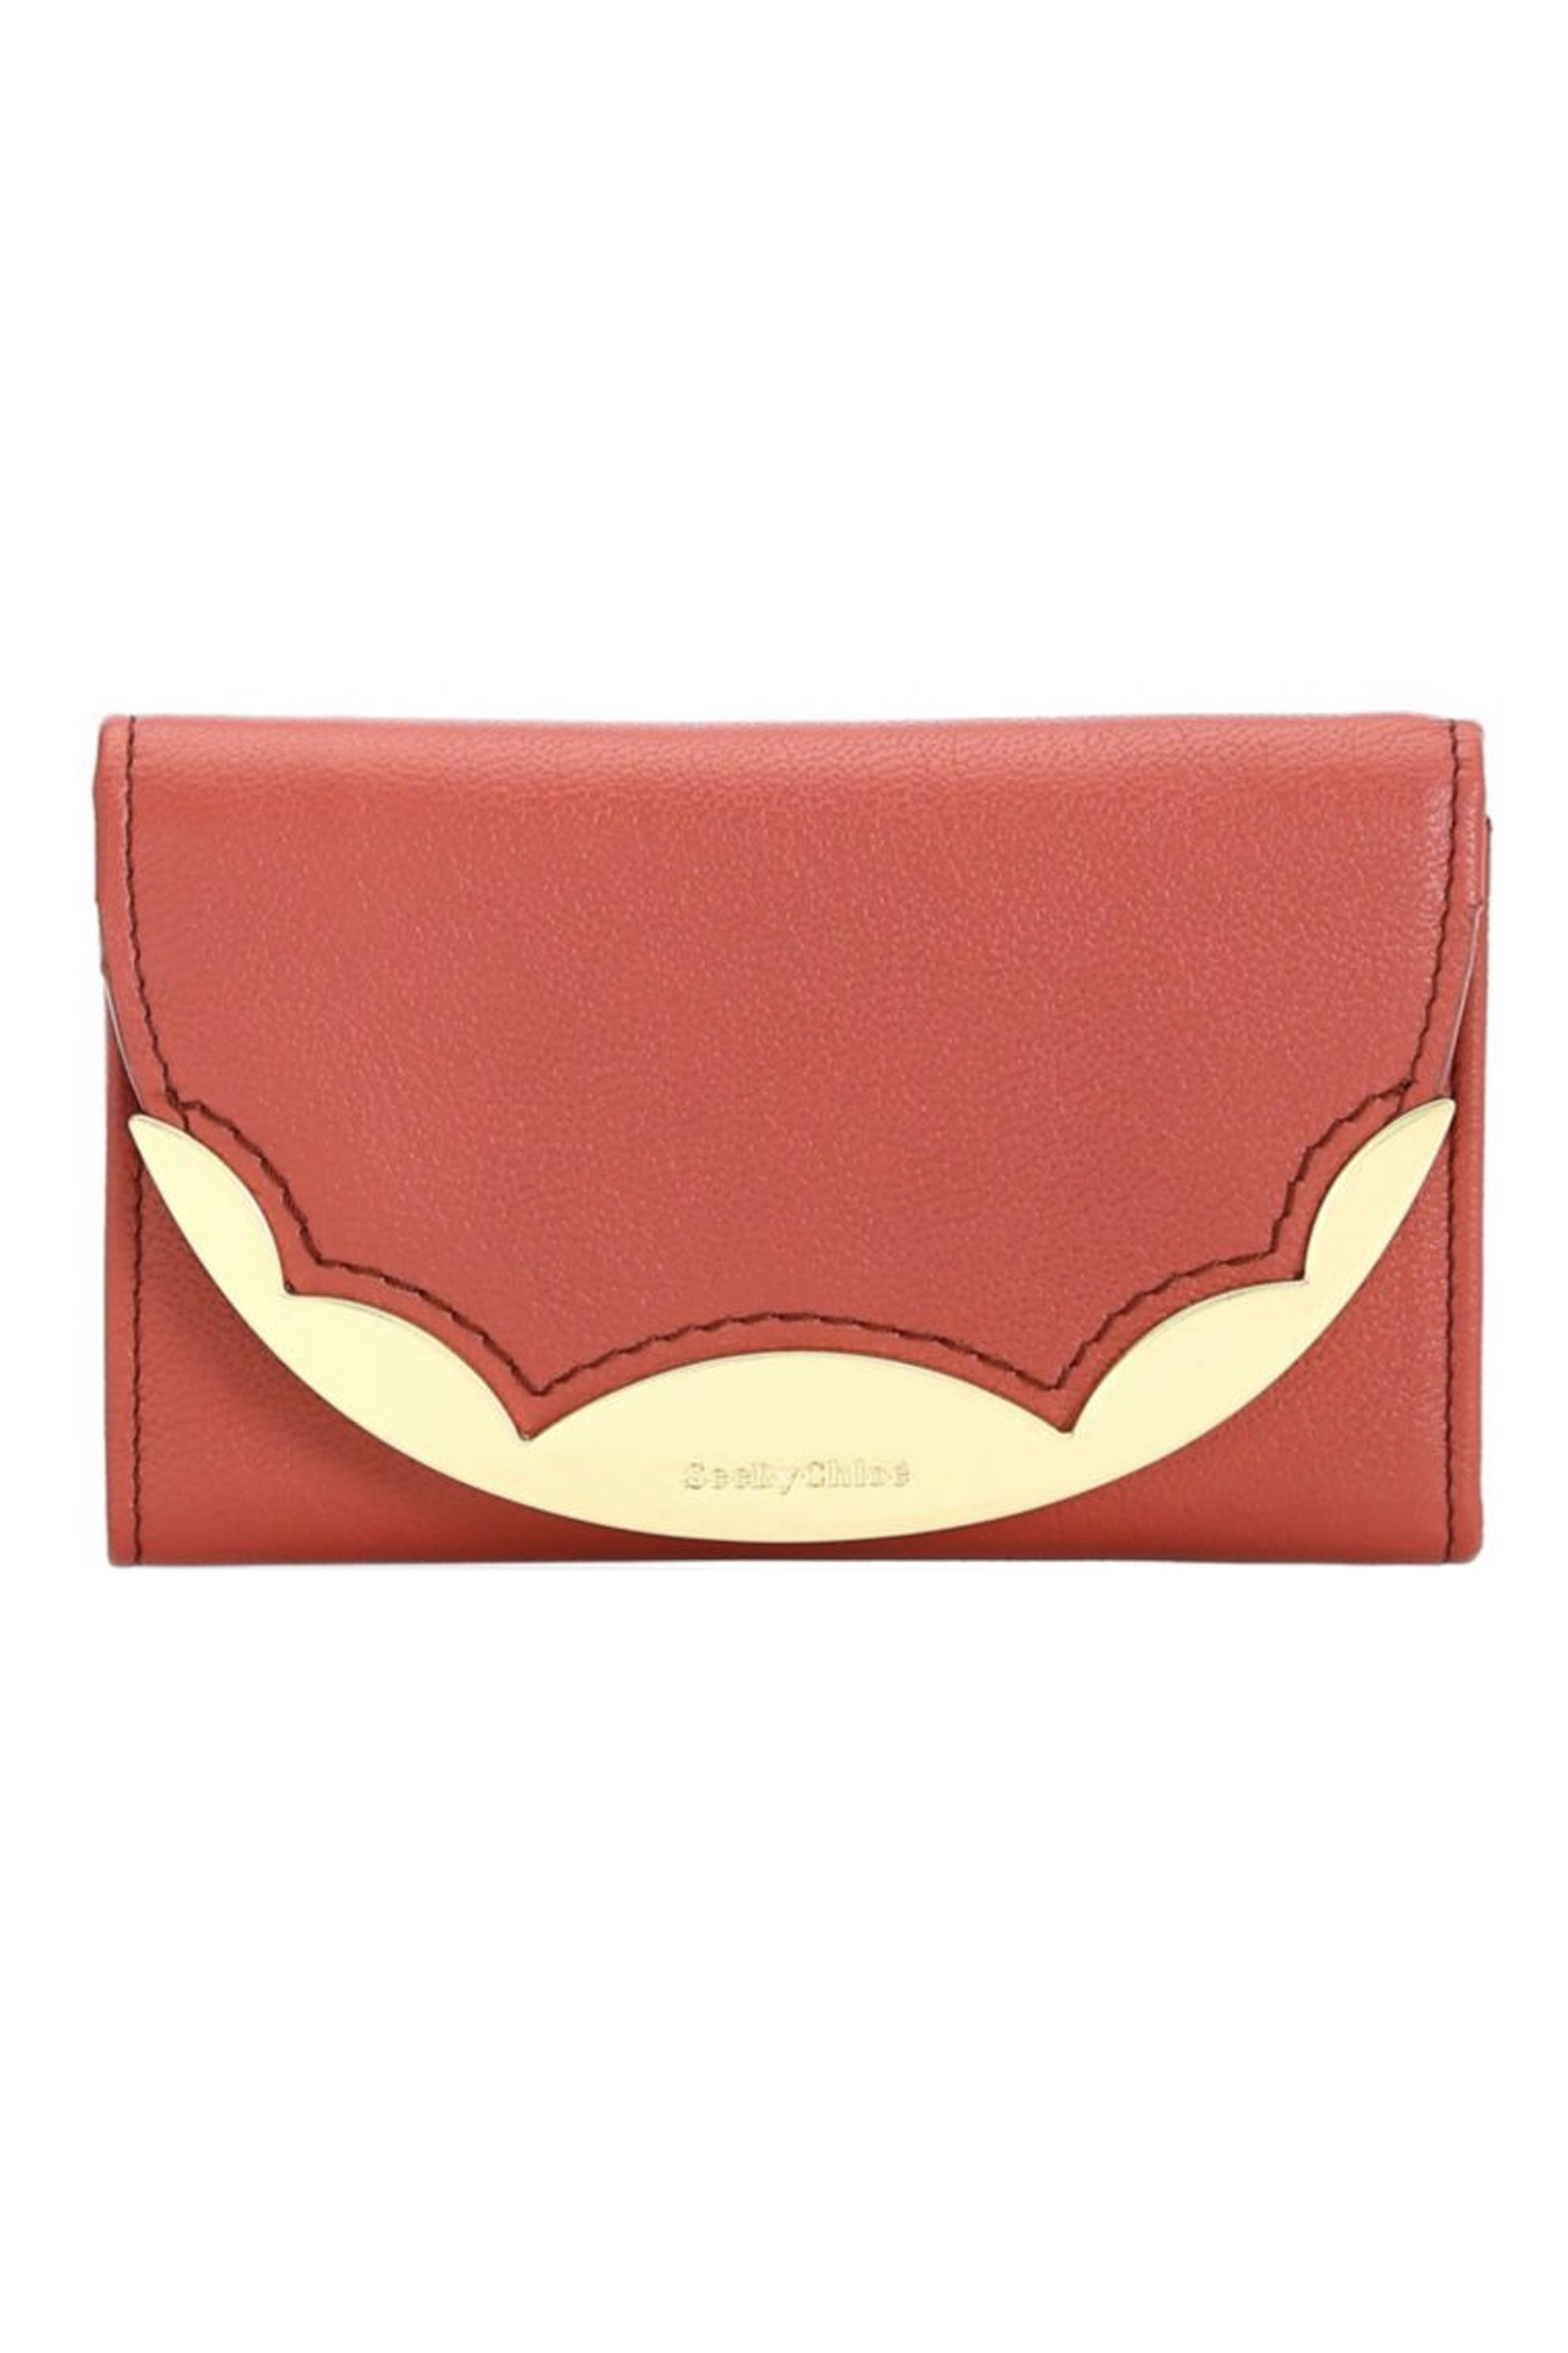 1d75b1f8859 10 Best Wallets for Women - Affordable Wallets Including Card Cases and  Clutch Styles